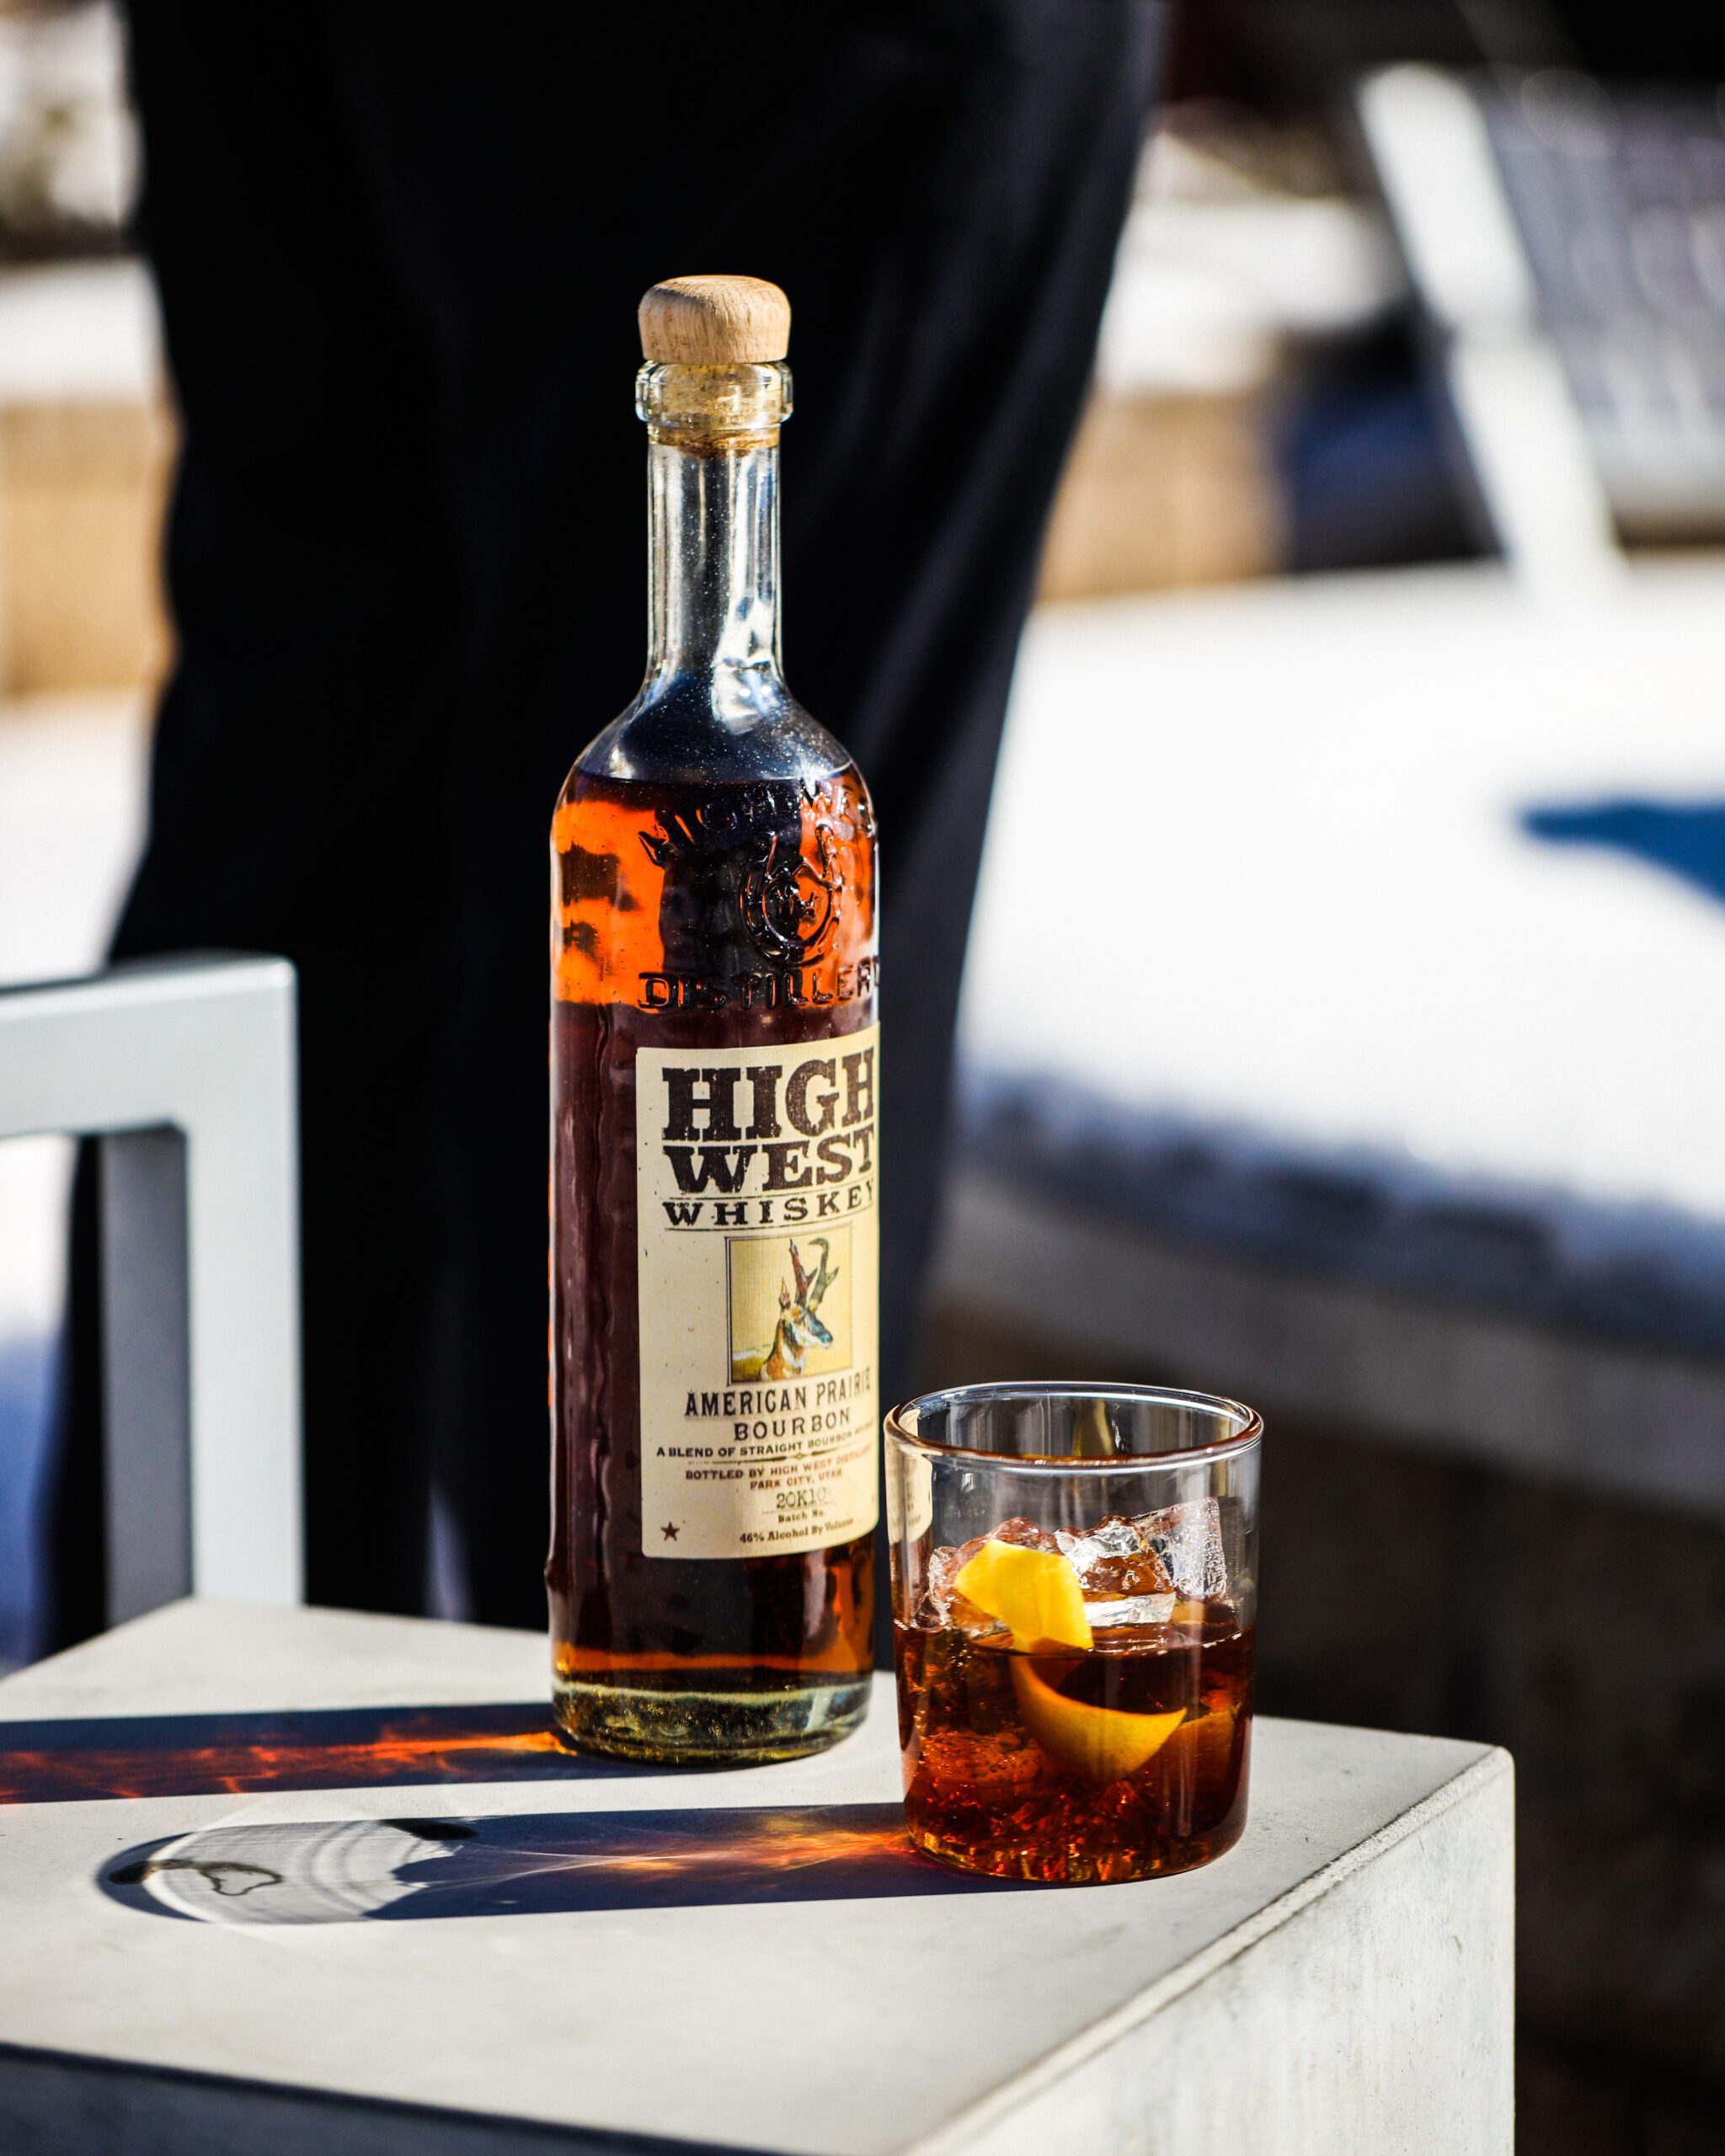 Winter old fashioned with High West Whiskey